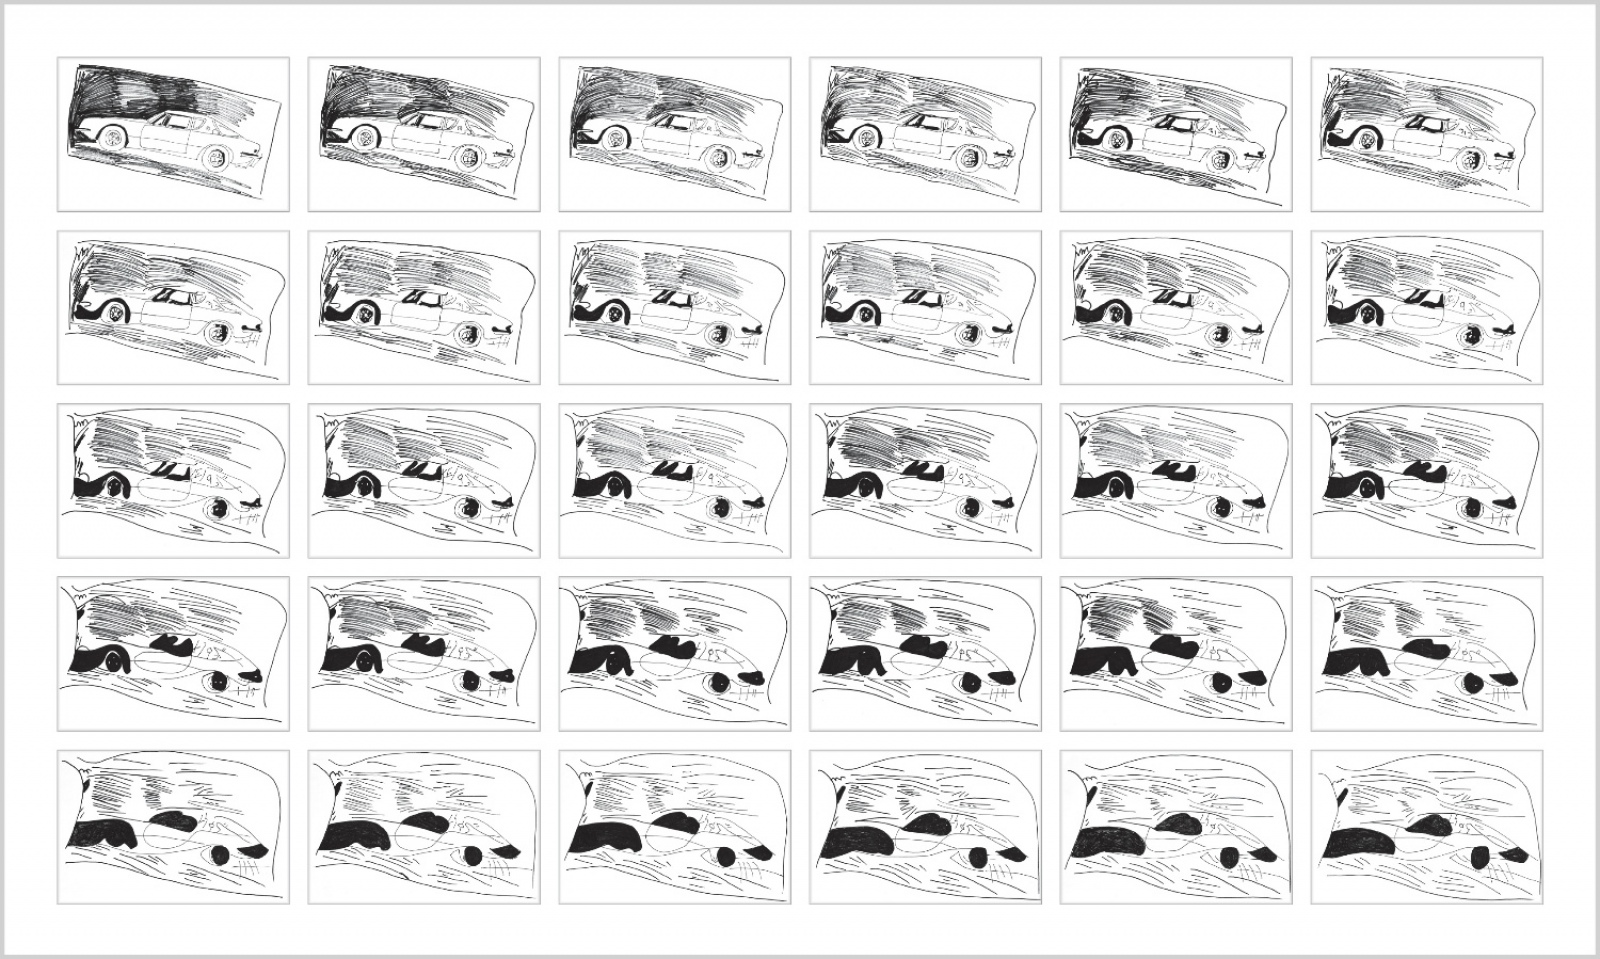 Rob and Nick Carter - RN834, Chinese Whispers, Car after Andy Warhol (1962), 2015 · © Copyright 2018